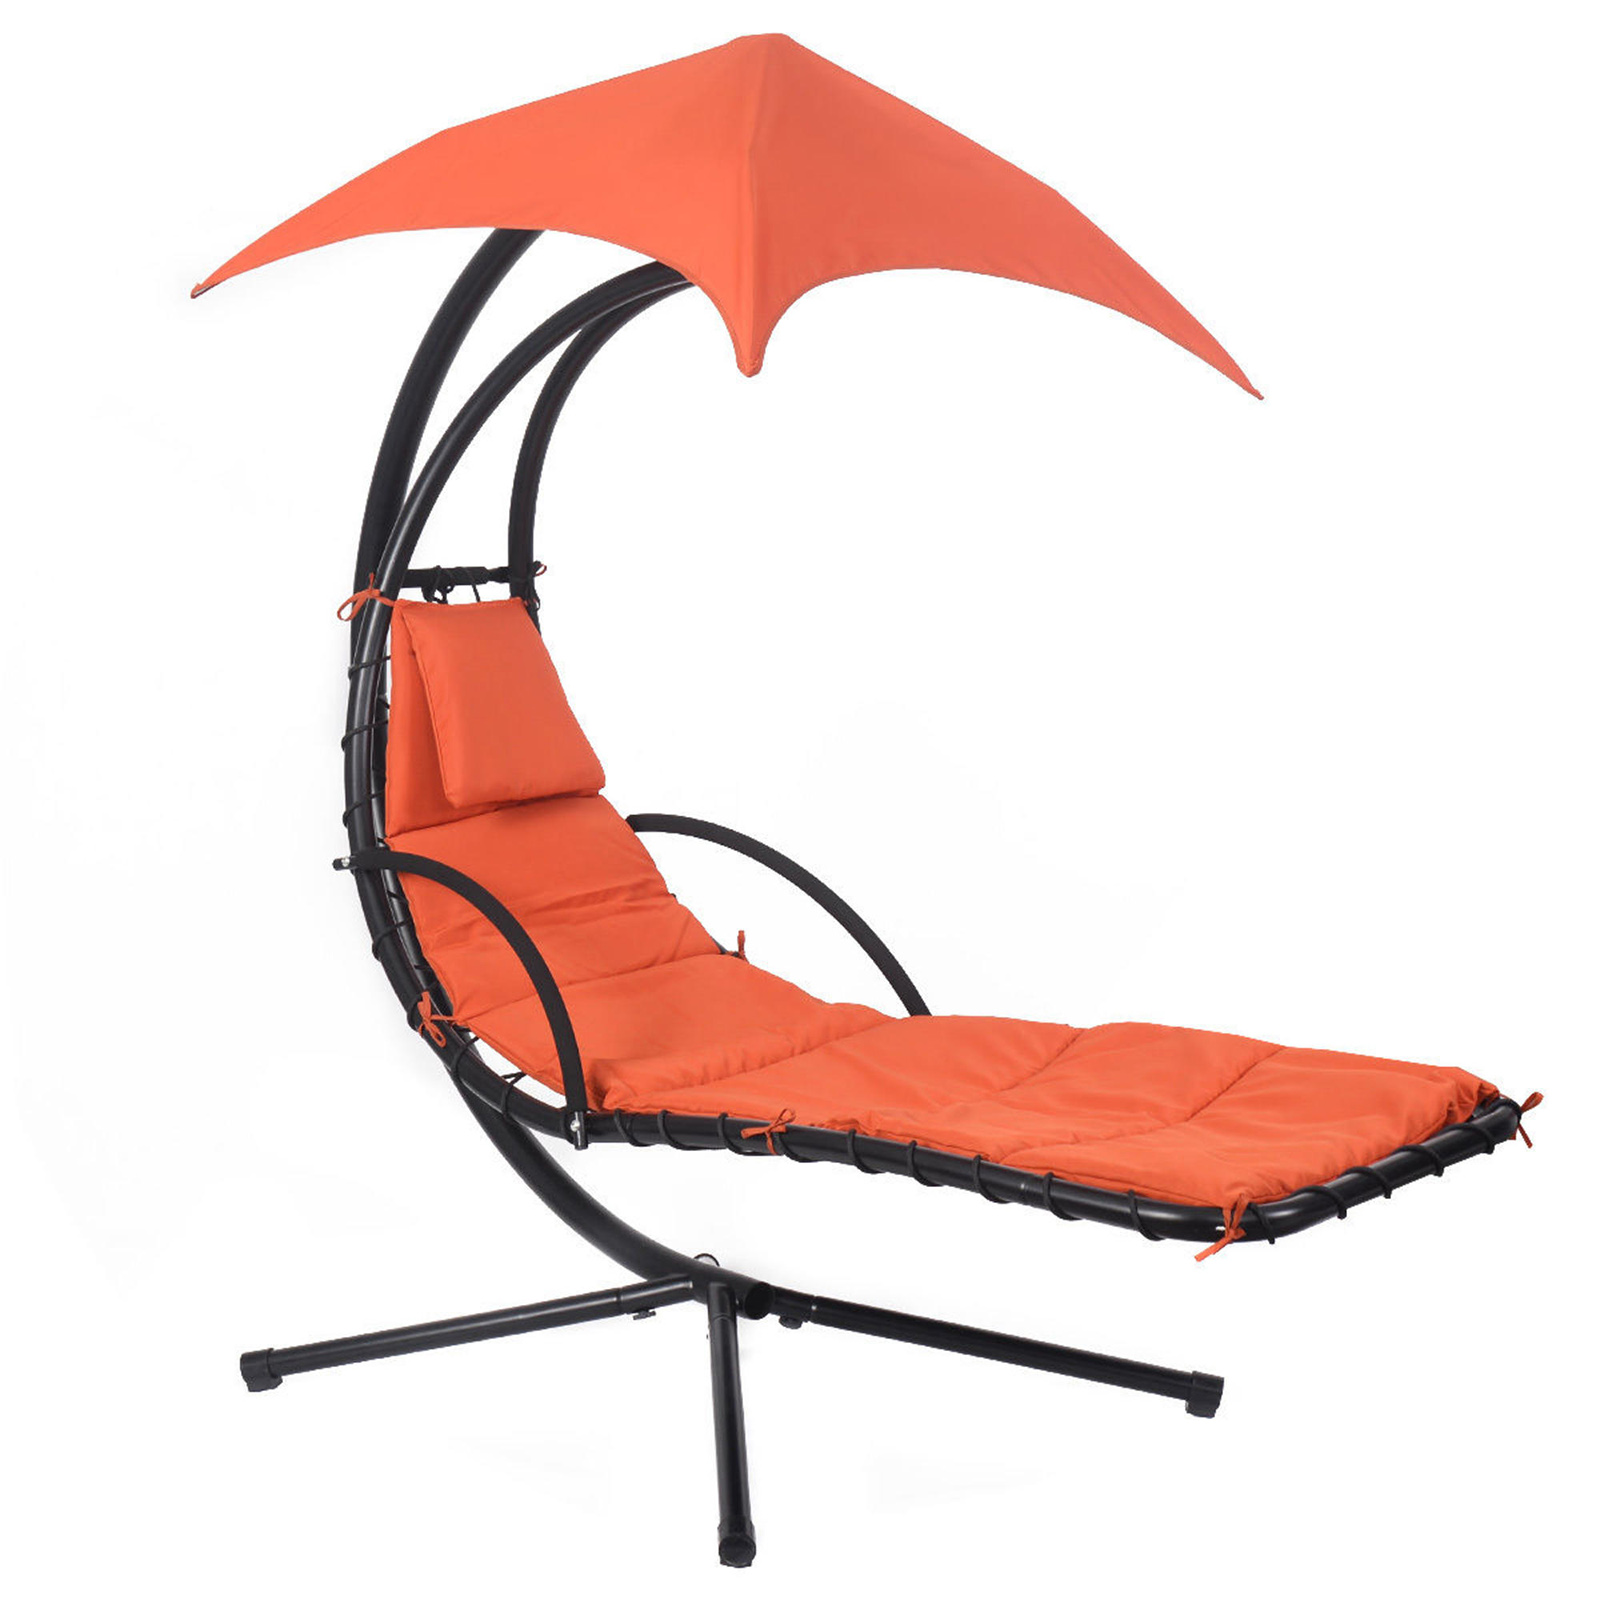 Pool Chaise Lounge Chairs Goplus Metal Hanging Patio Chaise Lounge Chair Sears Marketplace